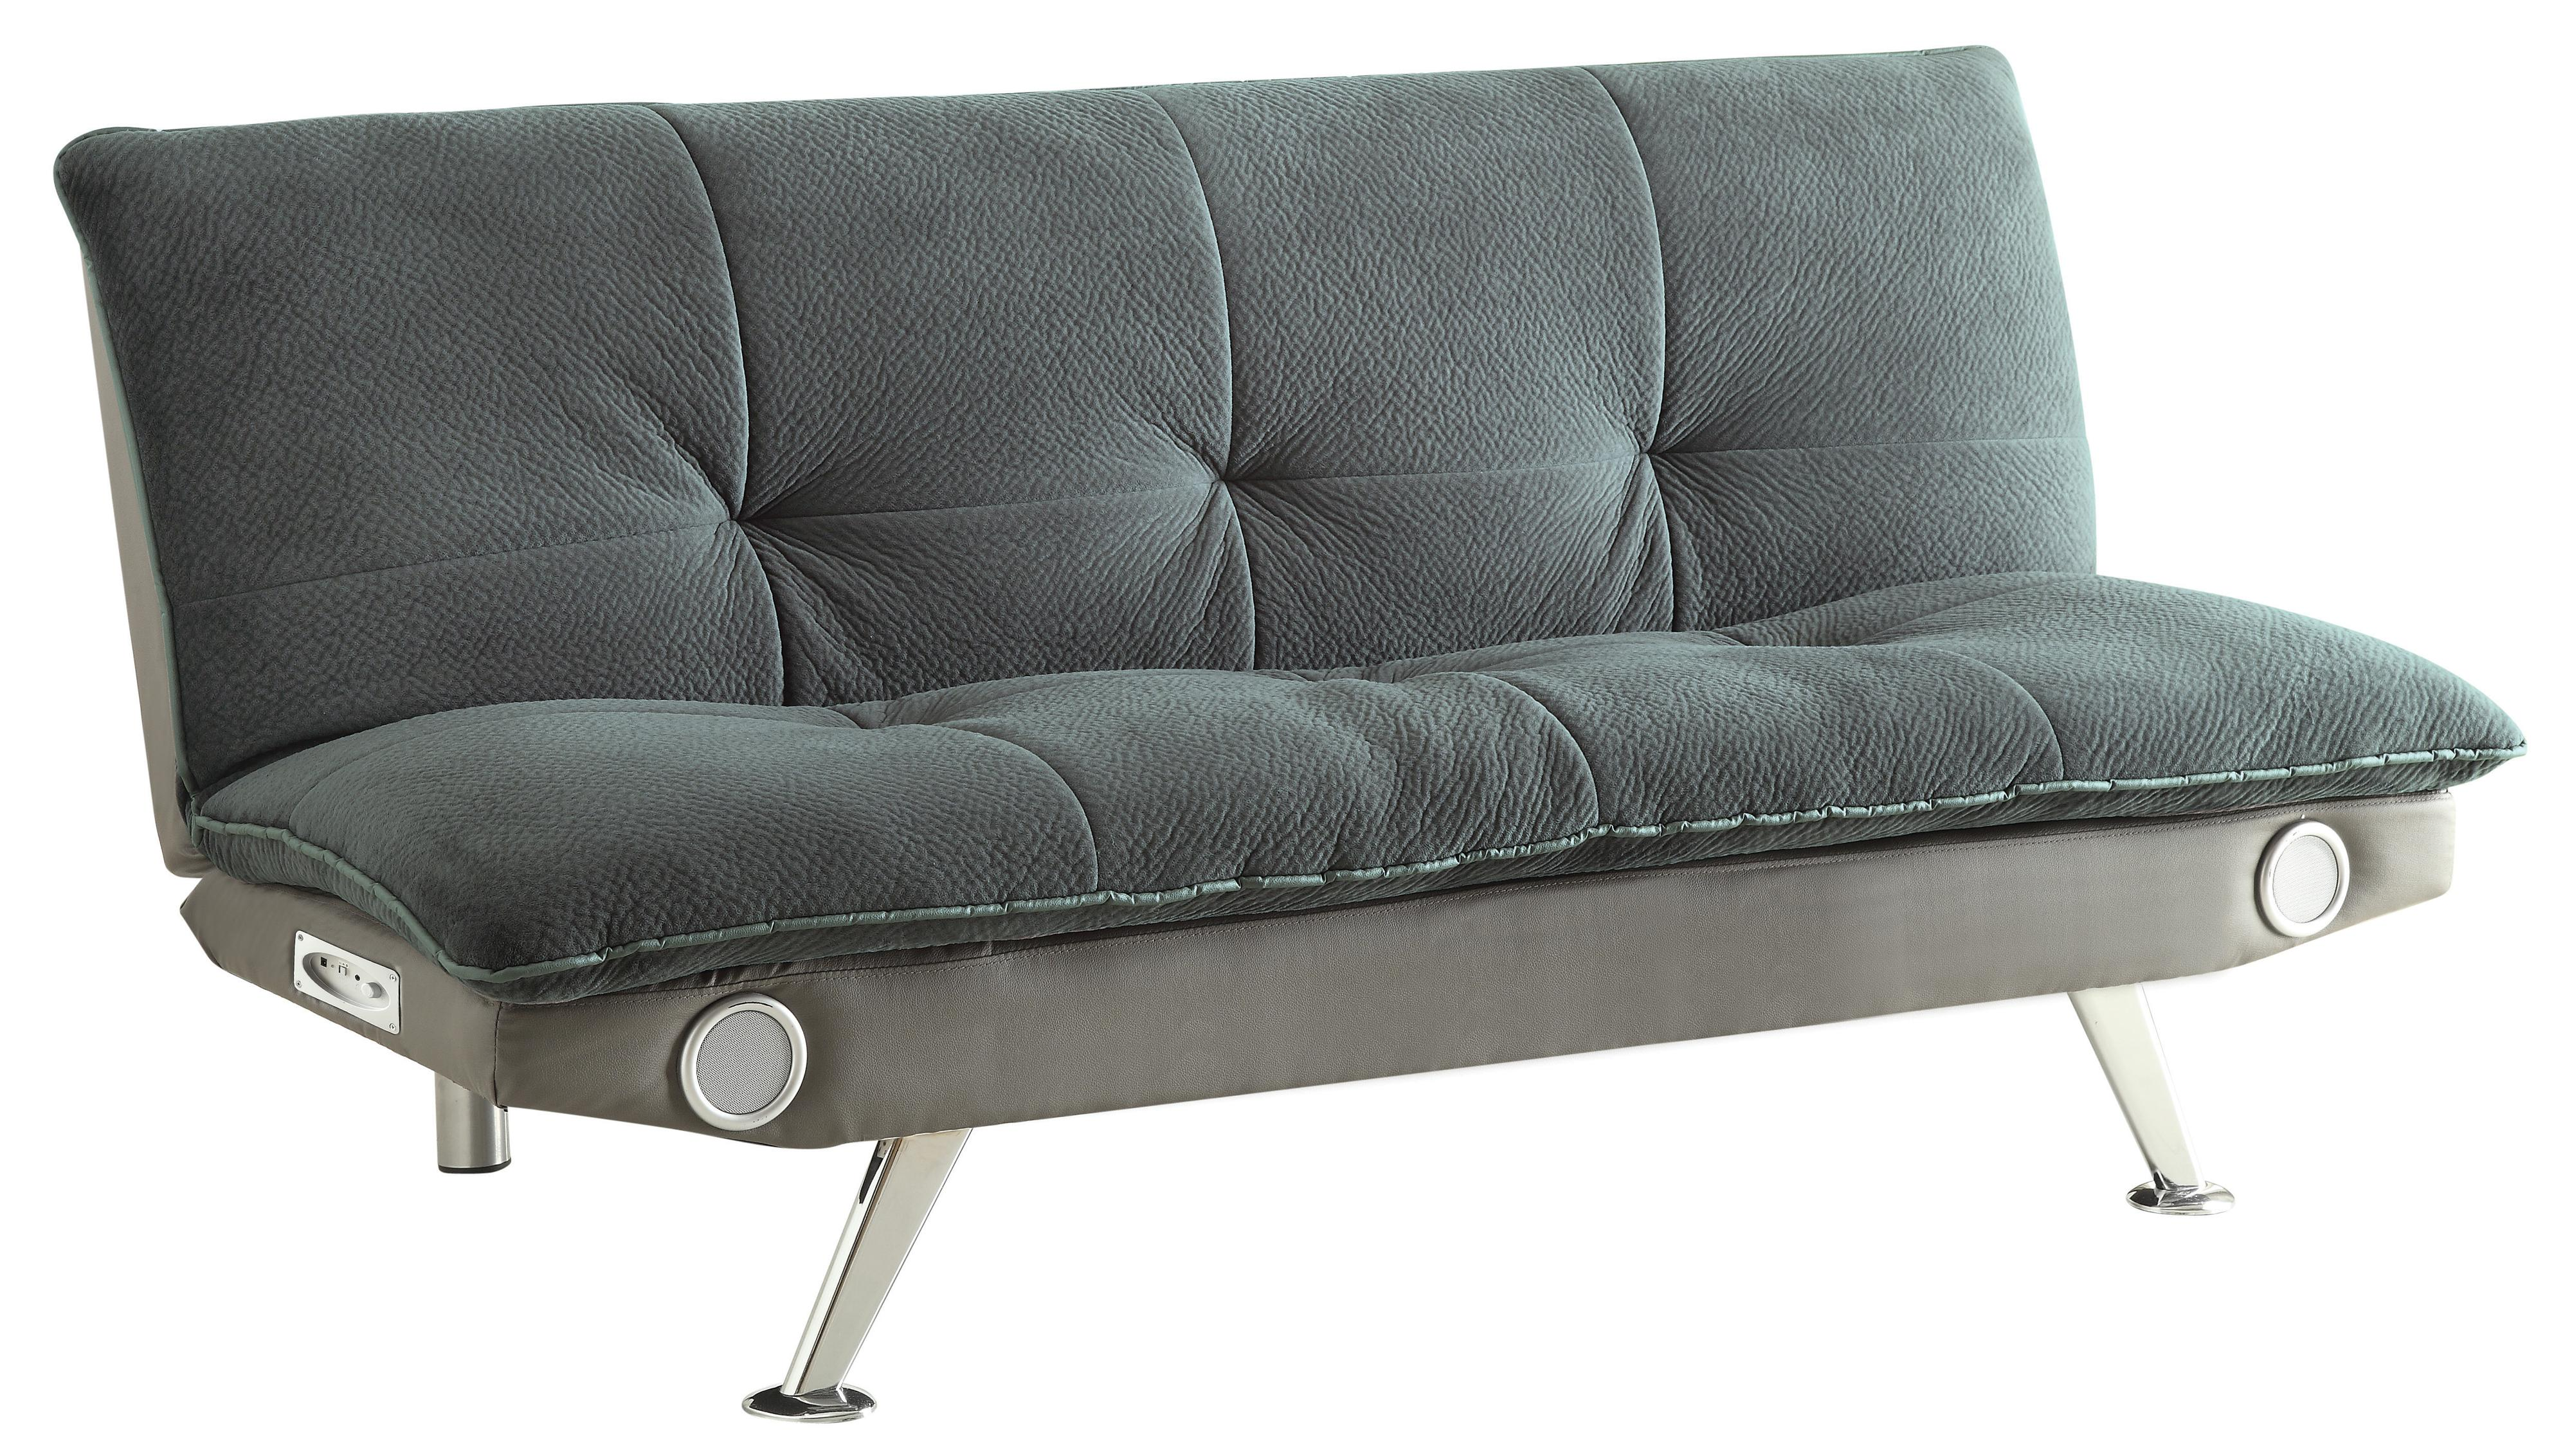 coasters sofa bed how to reupholster a seat cushion coaster beds and futons with built in